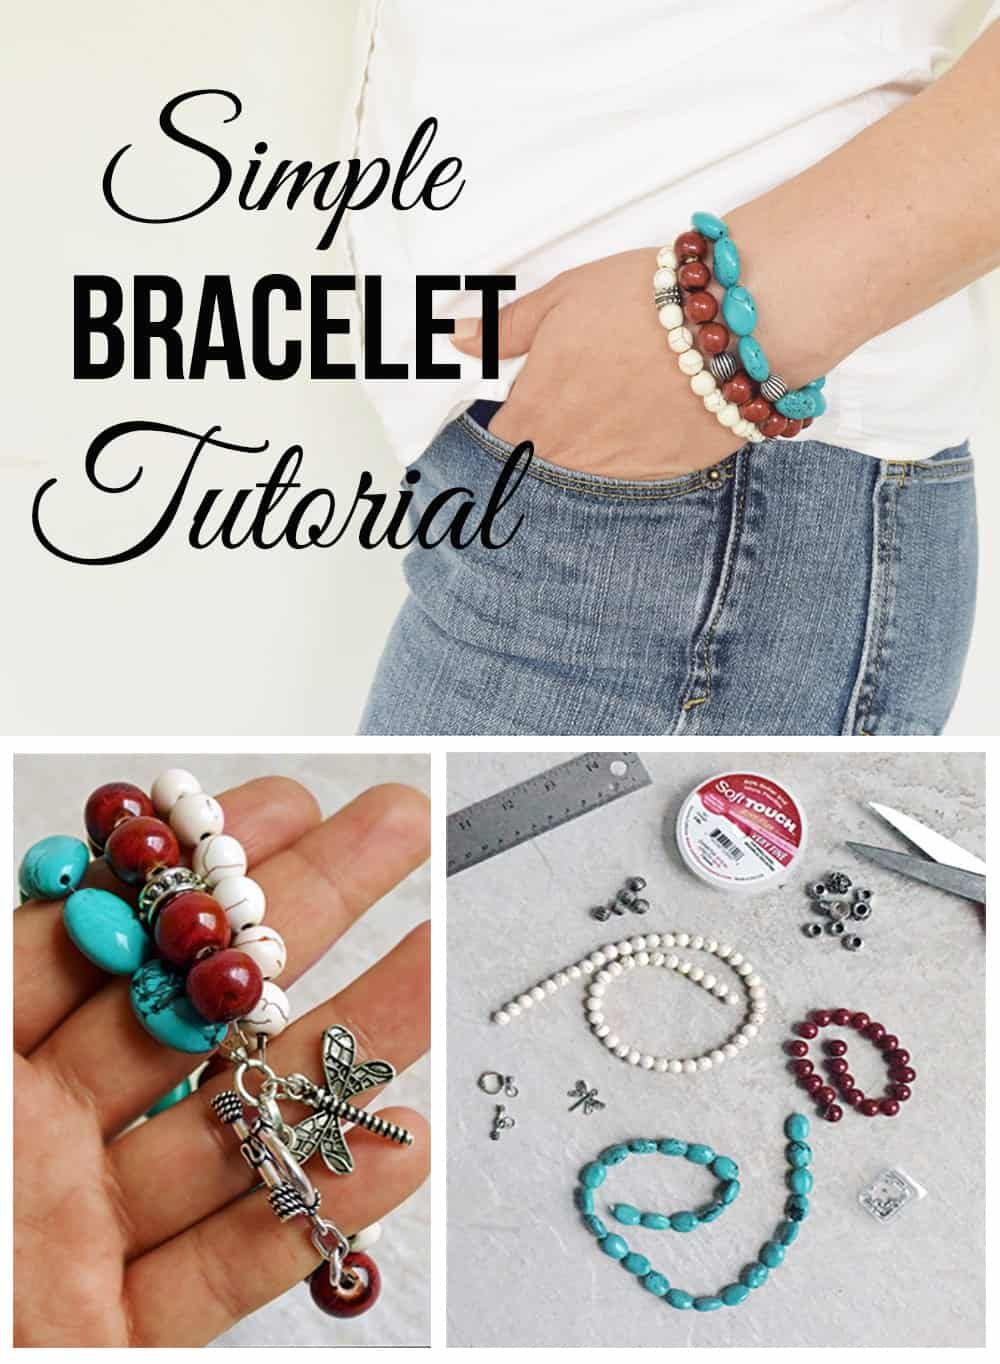 Simple DIY bracelet collage with supplies and completed bracelet on woman's wrist.